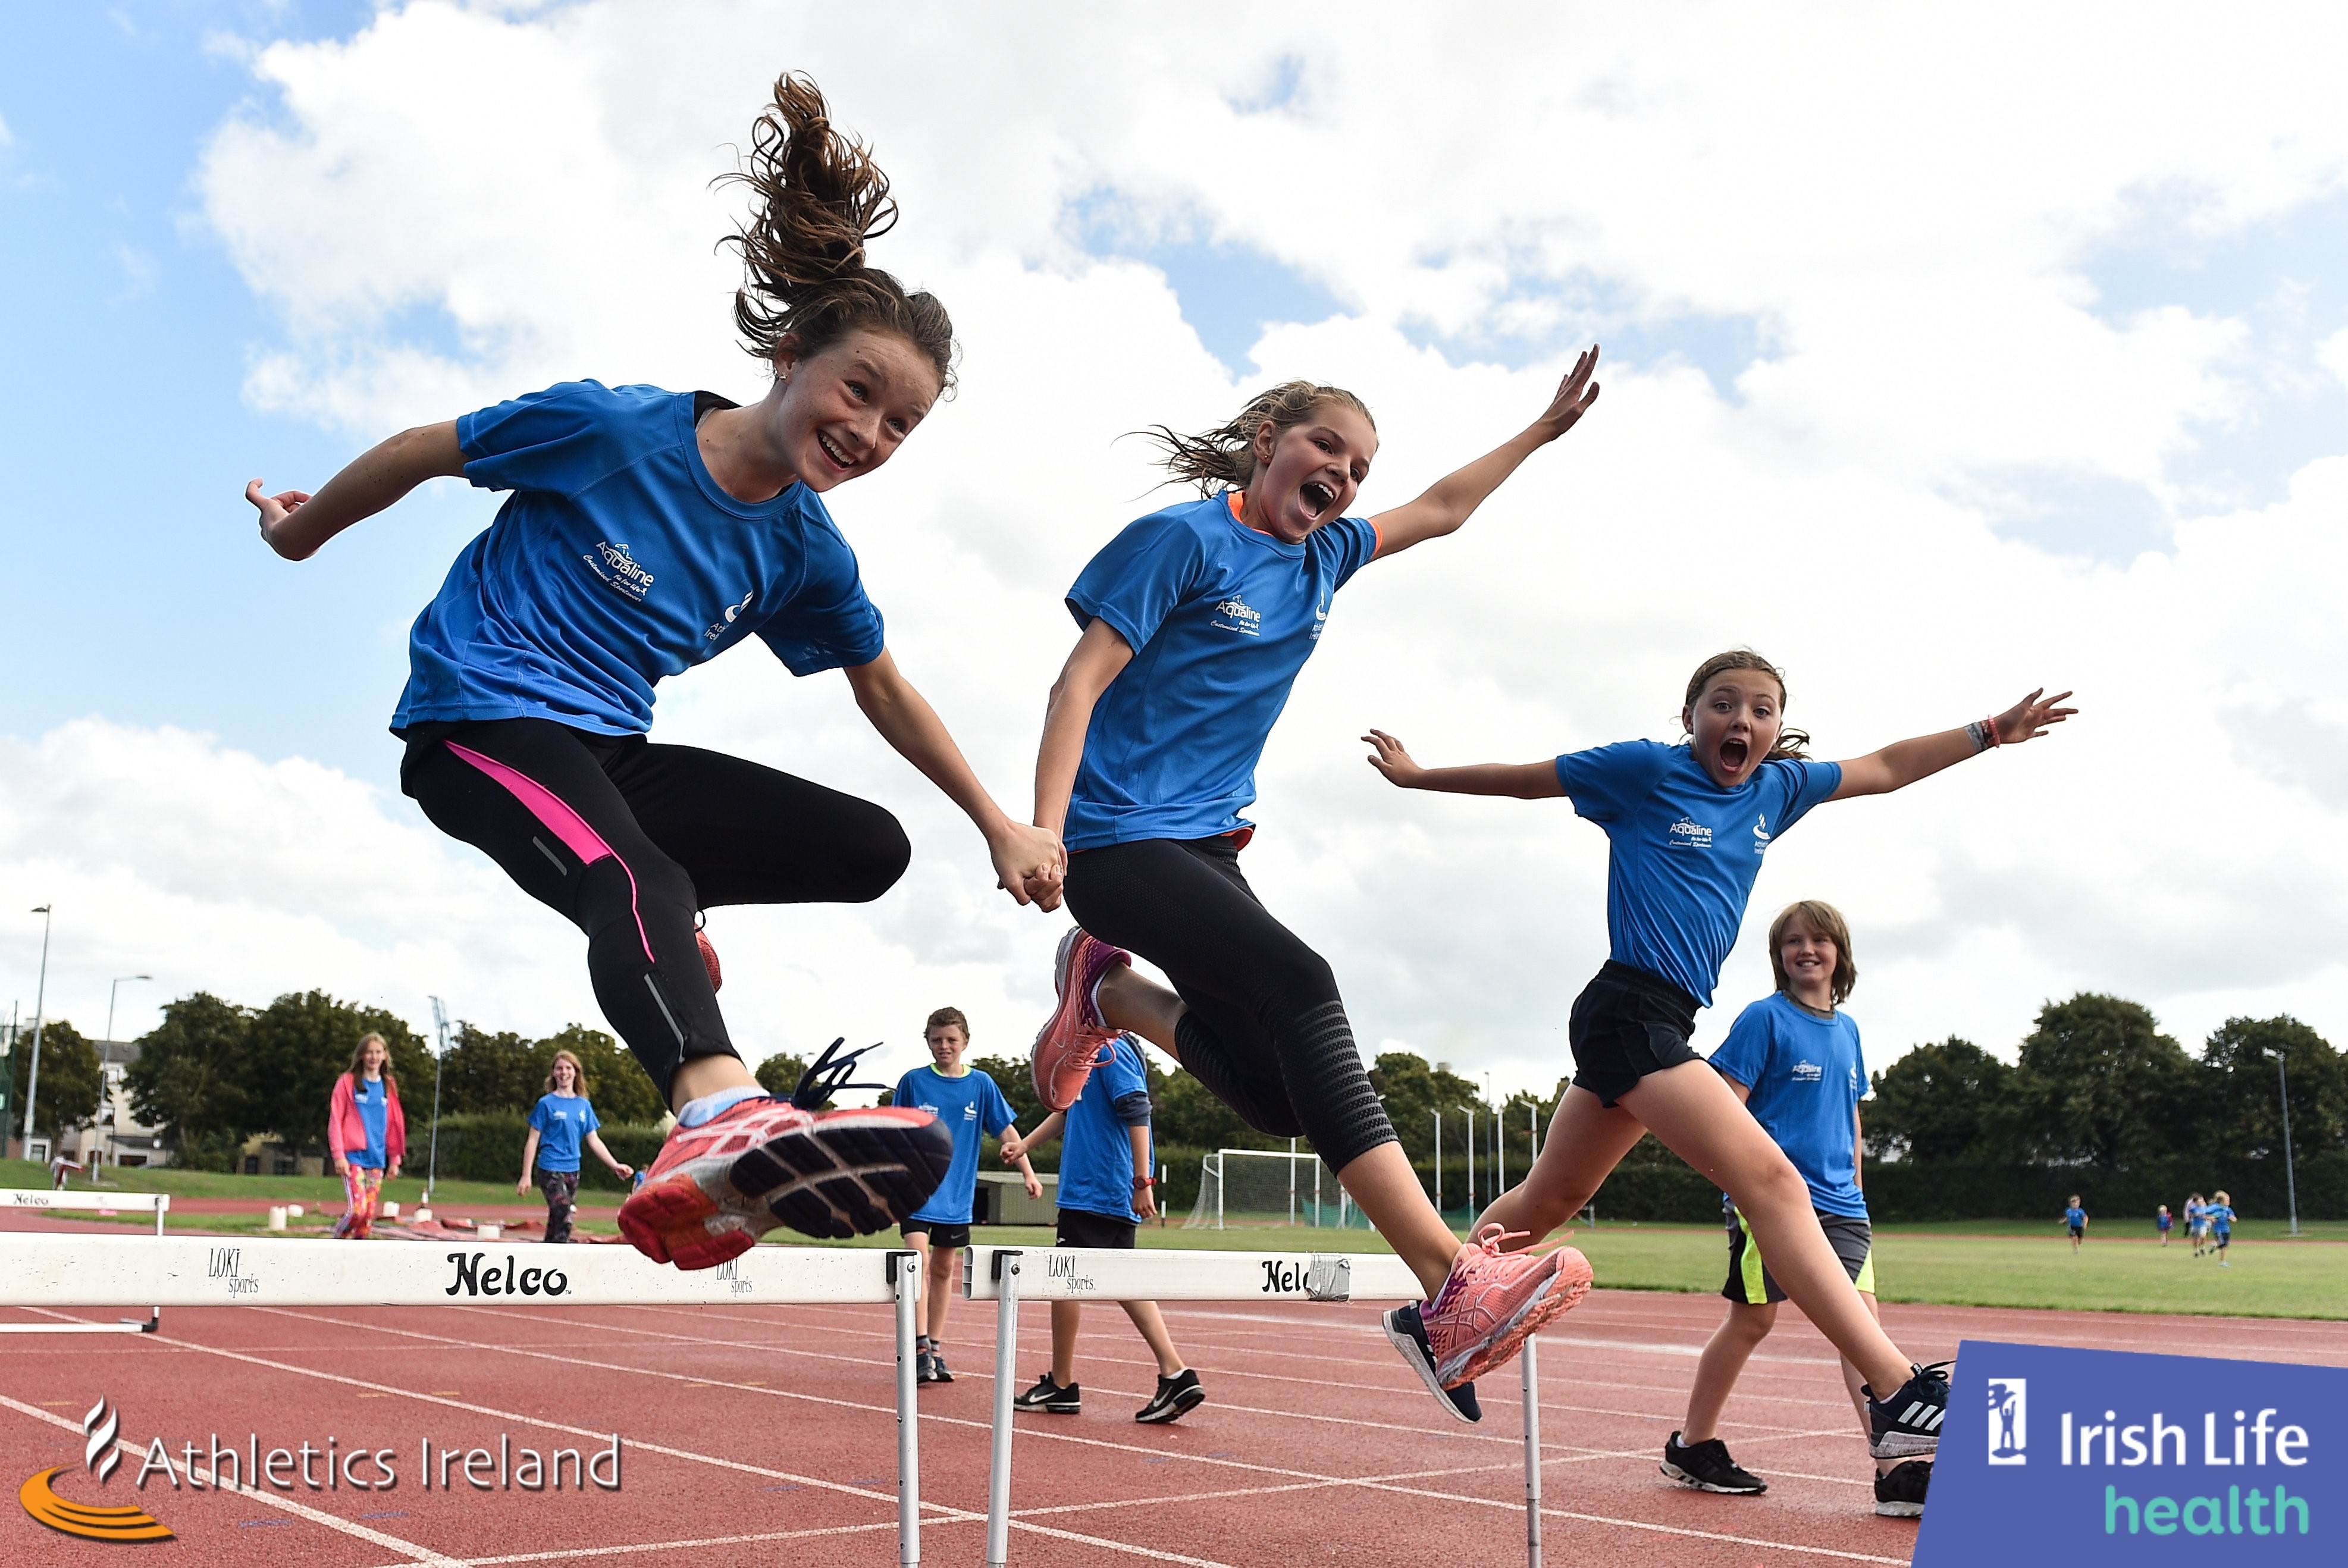 Host clubs wanted for 2019 Irish Life Health Summer Camp Programme